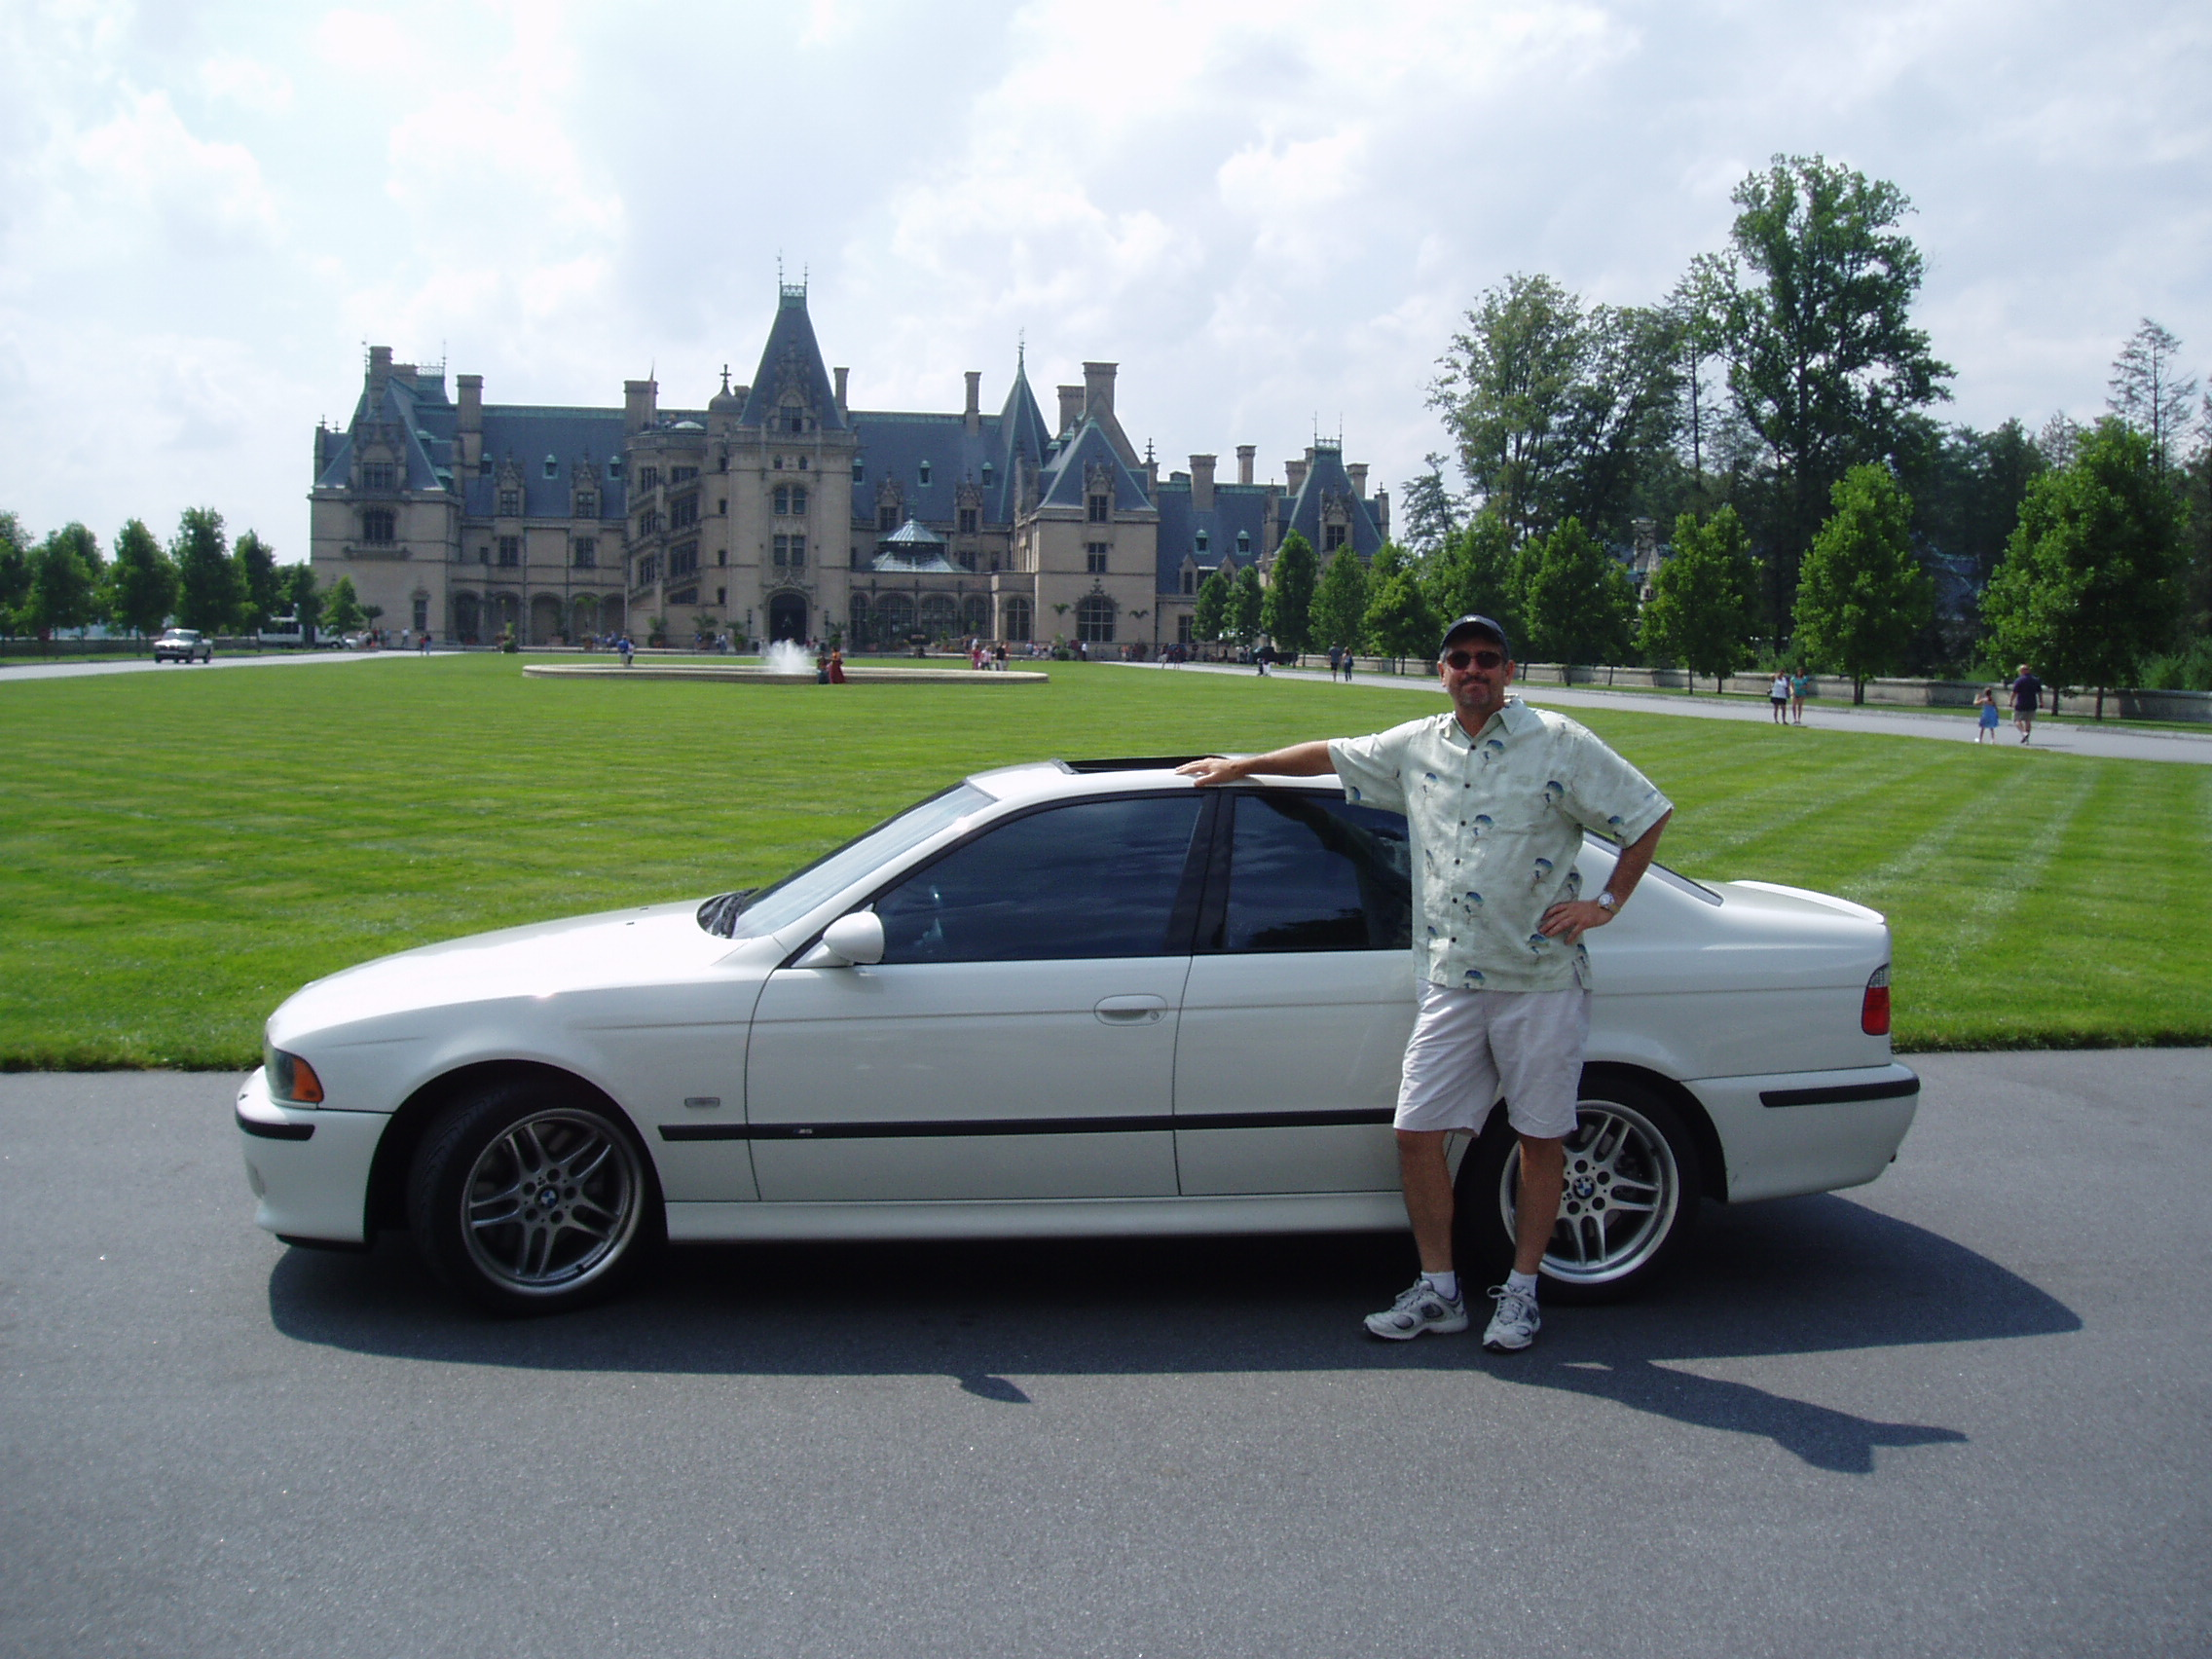 Pictures of You and your M5-biltmore-043.jpg